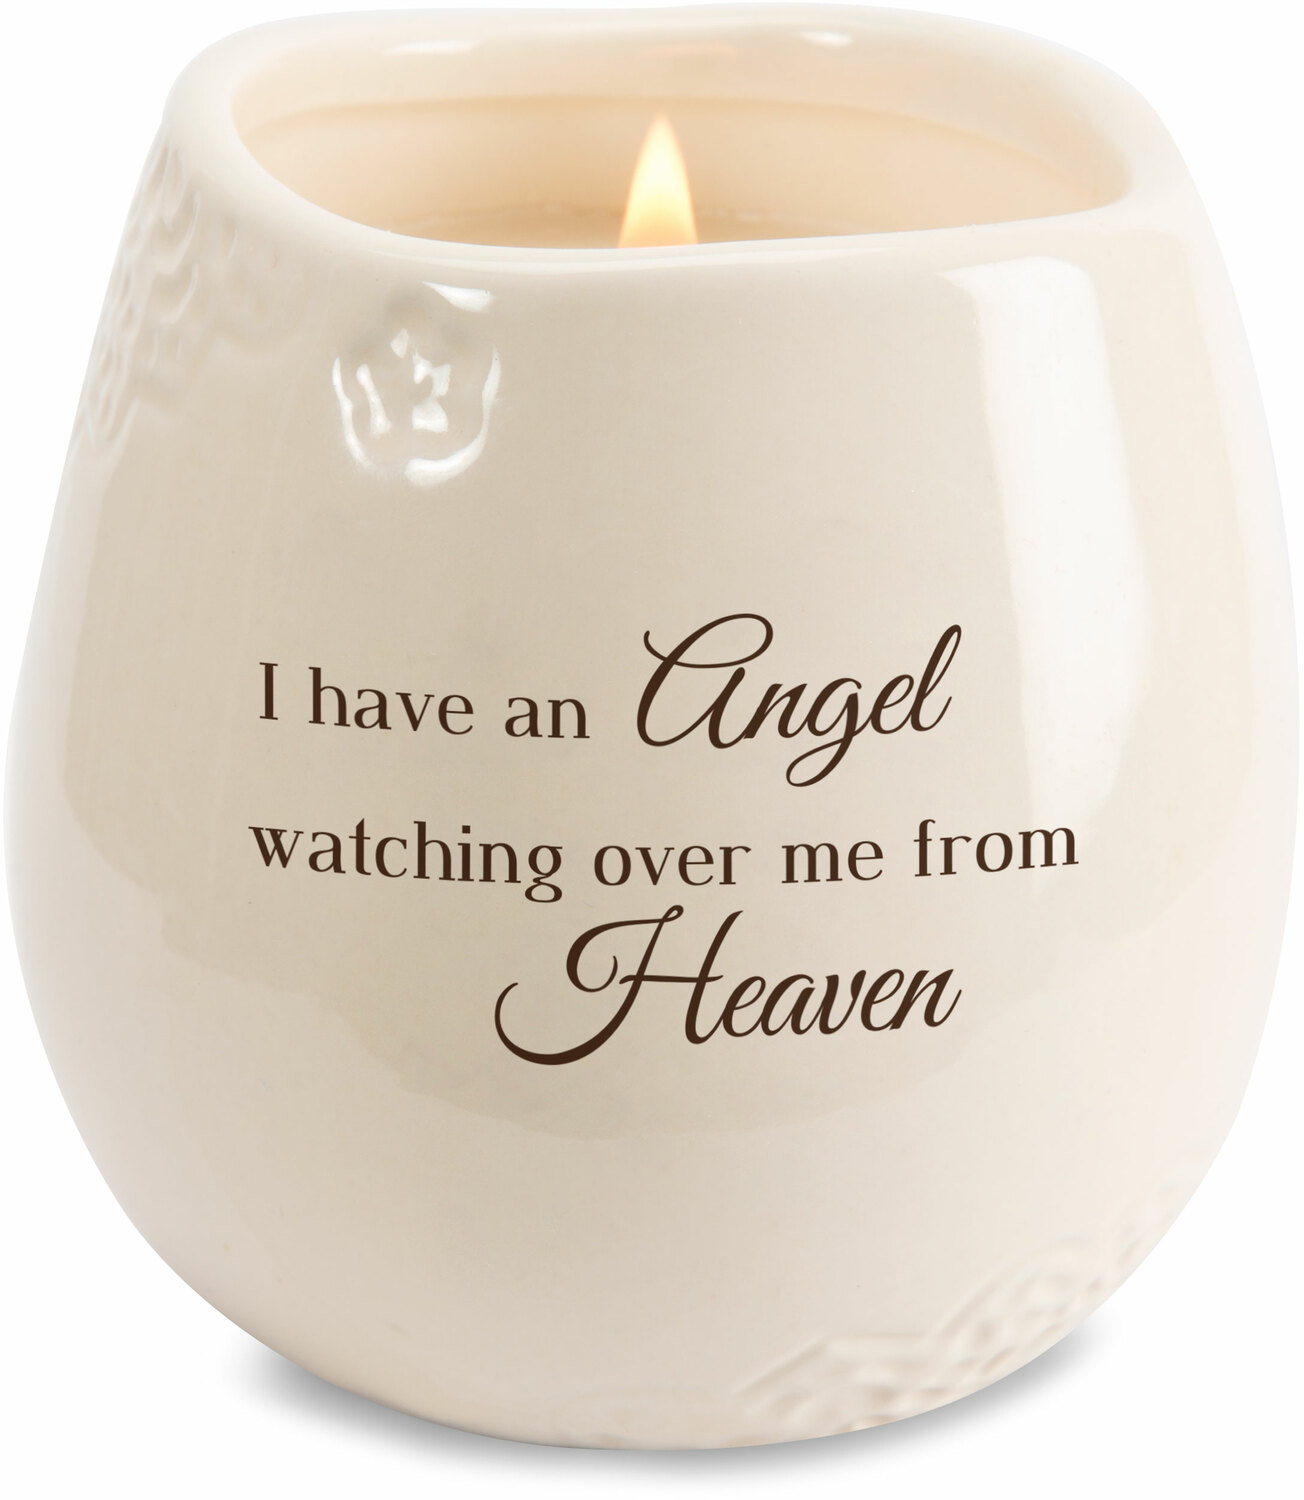 Heaven by Light Your Way Memorial - Heaven - 8 oz - 100% Soy Wax Candle Scent: Tranquility